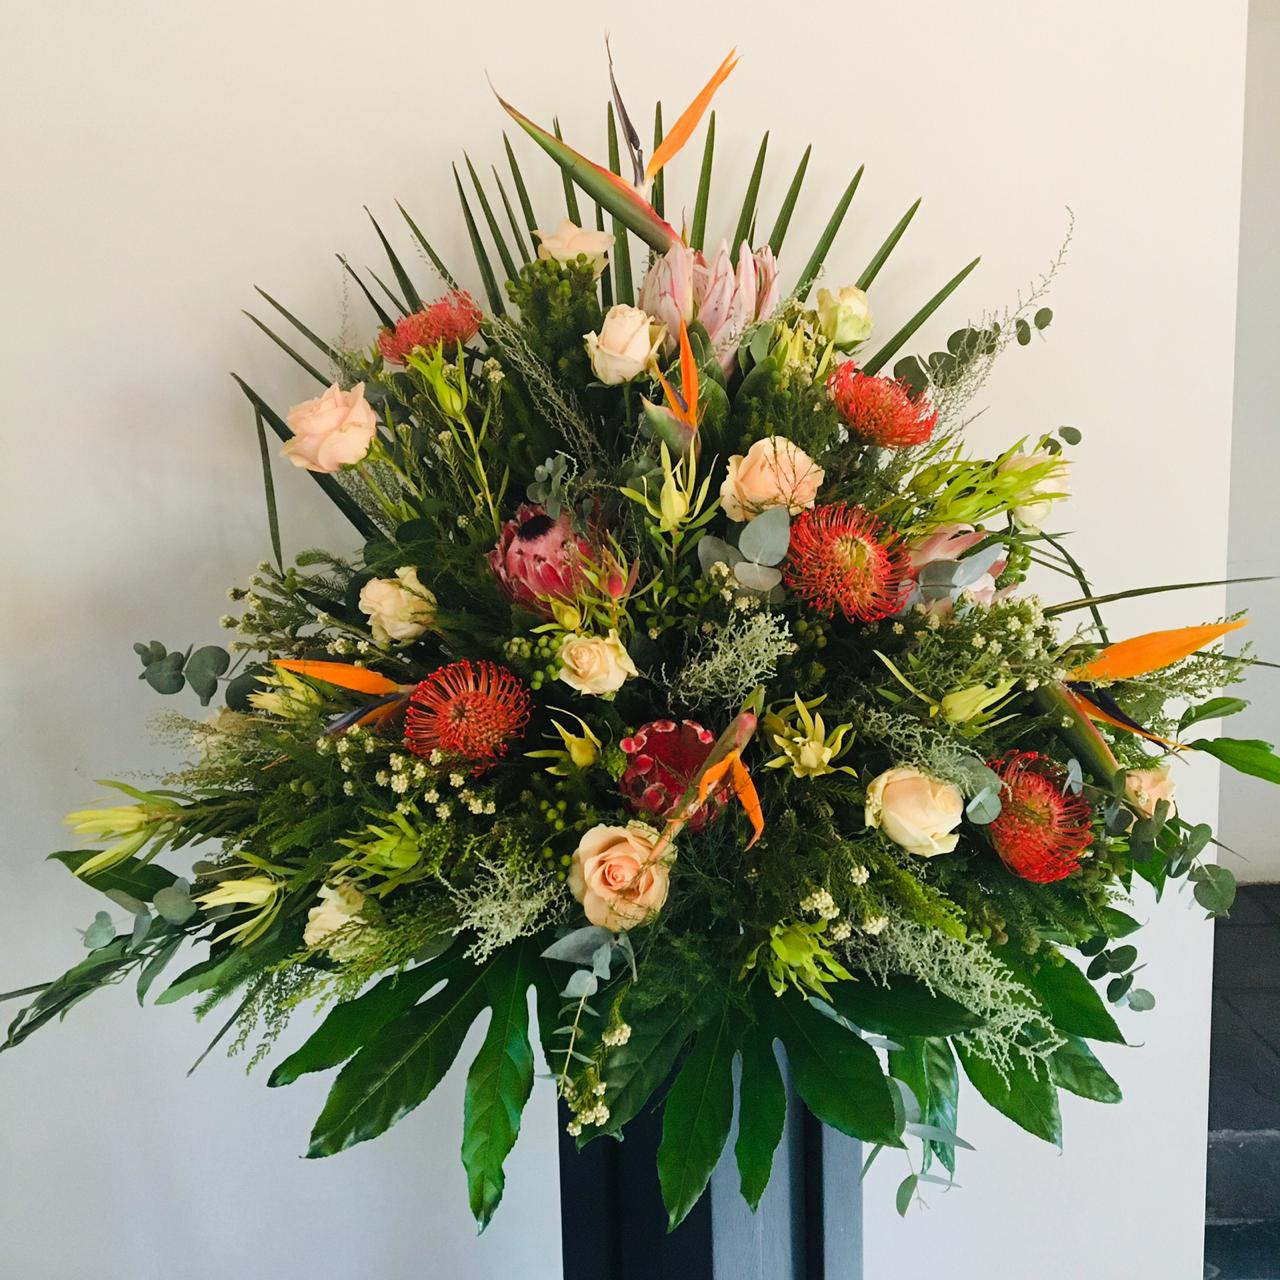 Cape flower arrangements with pincushions, roses and strelitzias (seasonal) from